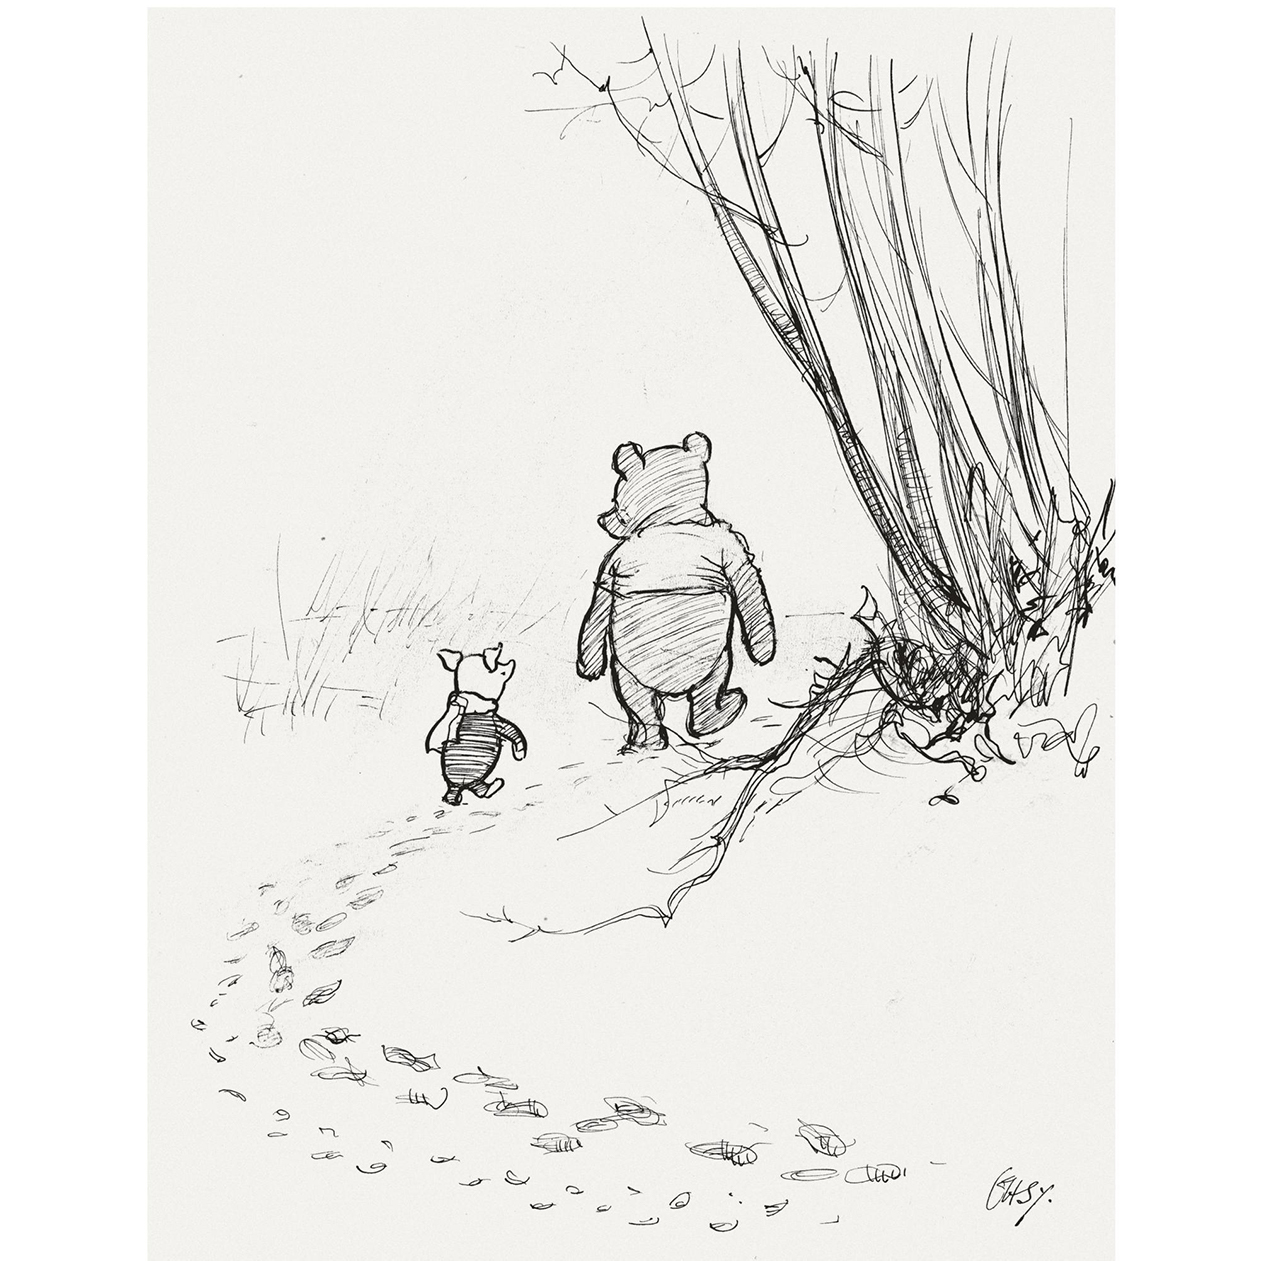 Pooh and Piglet walking, illustration by E.H.Shepard